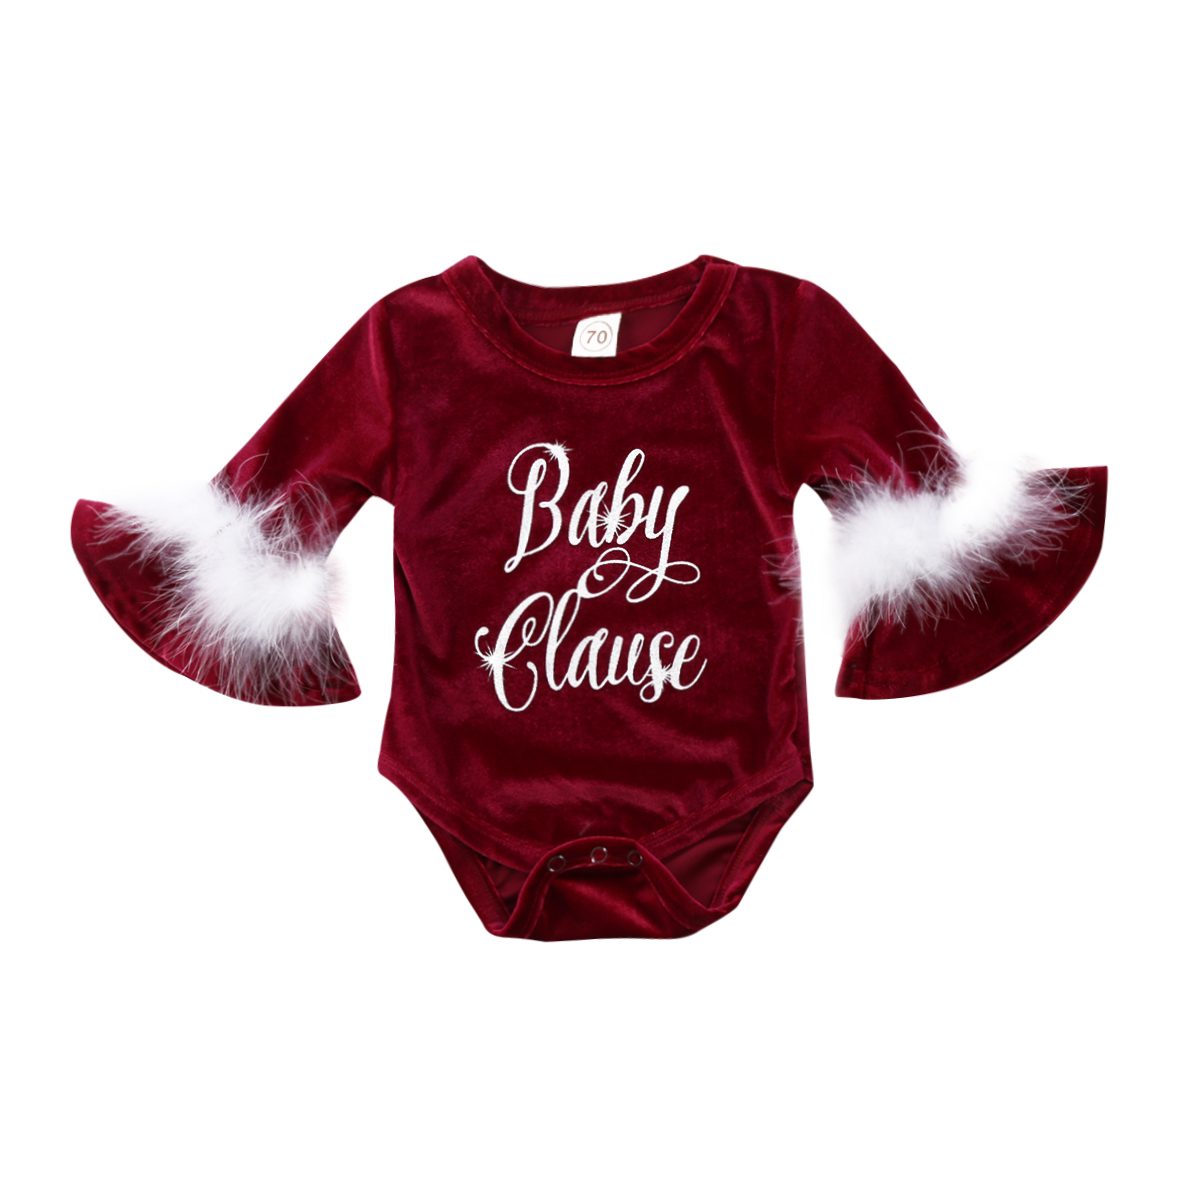 Baby Rompers Cute Santa Baby Claus Kids Girls Fur Romper Long Sleeve Jumpasuit Outfits Party One-pieces Baby Clothing Christmas retail kids christmas clothing set santa claus costume for baby xmas party clothes romper hat 2 pcs sets baby wear ds19